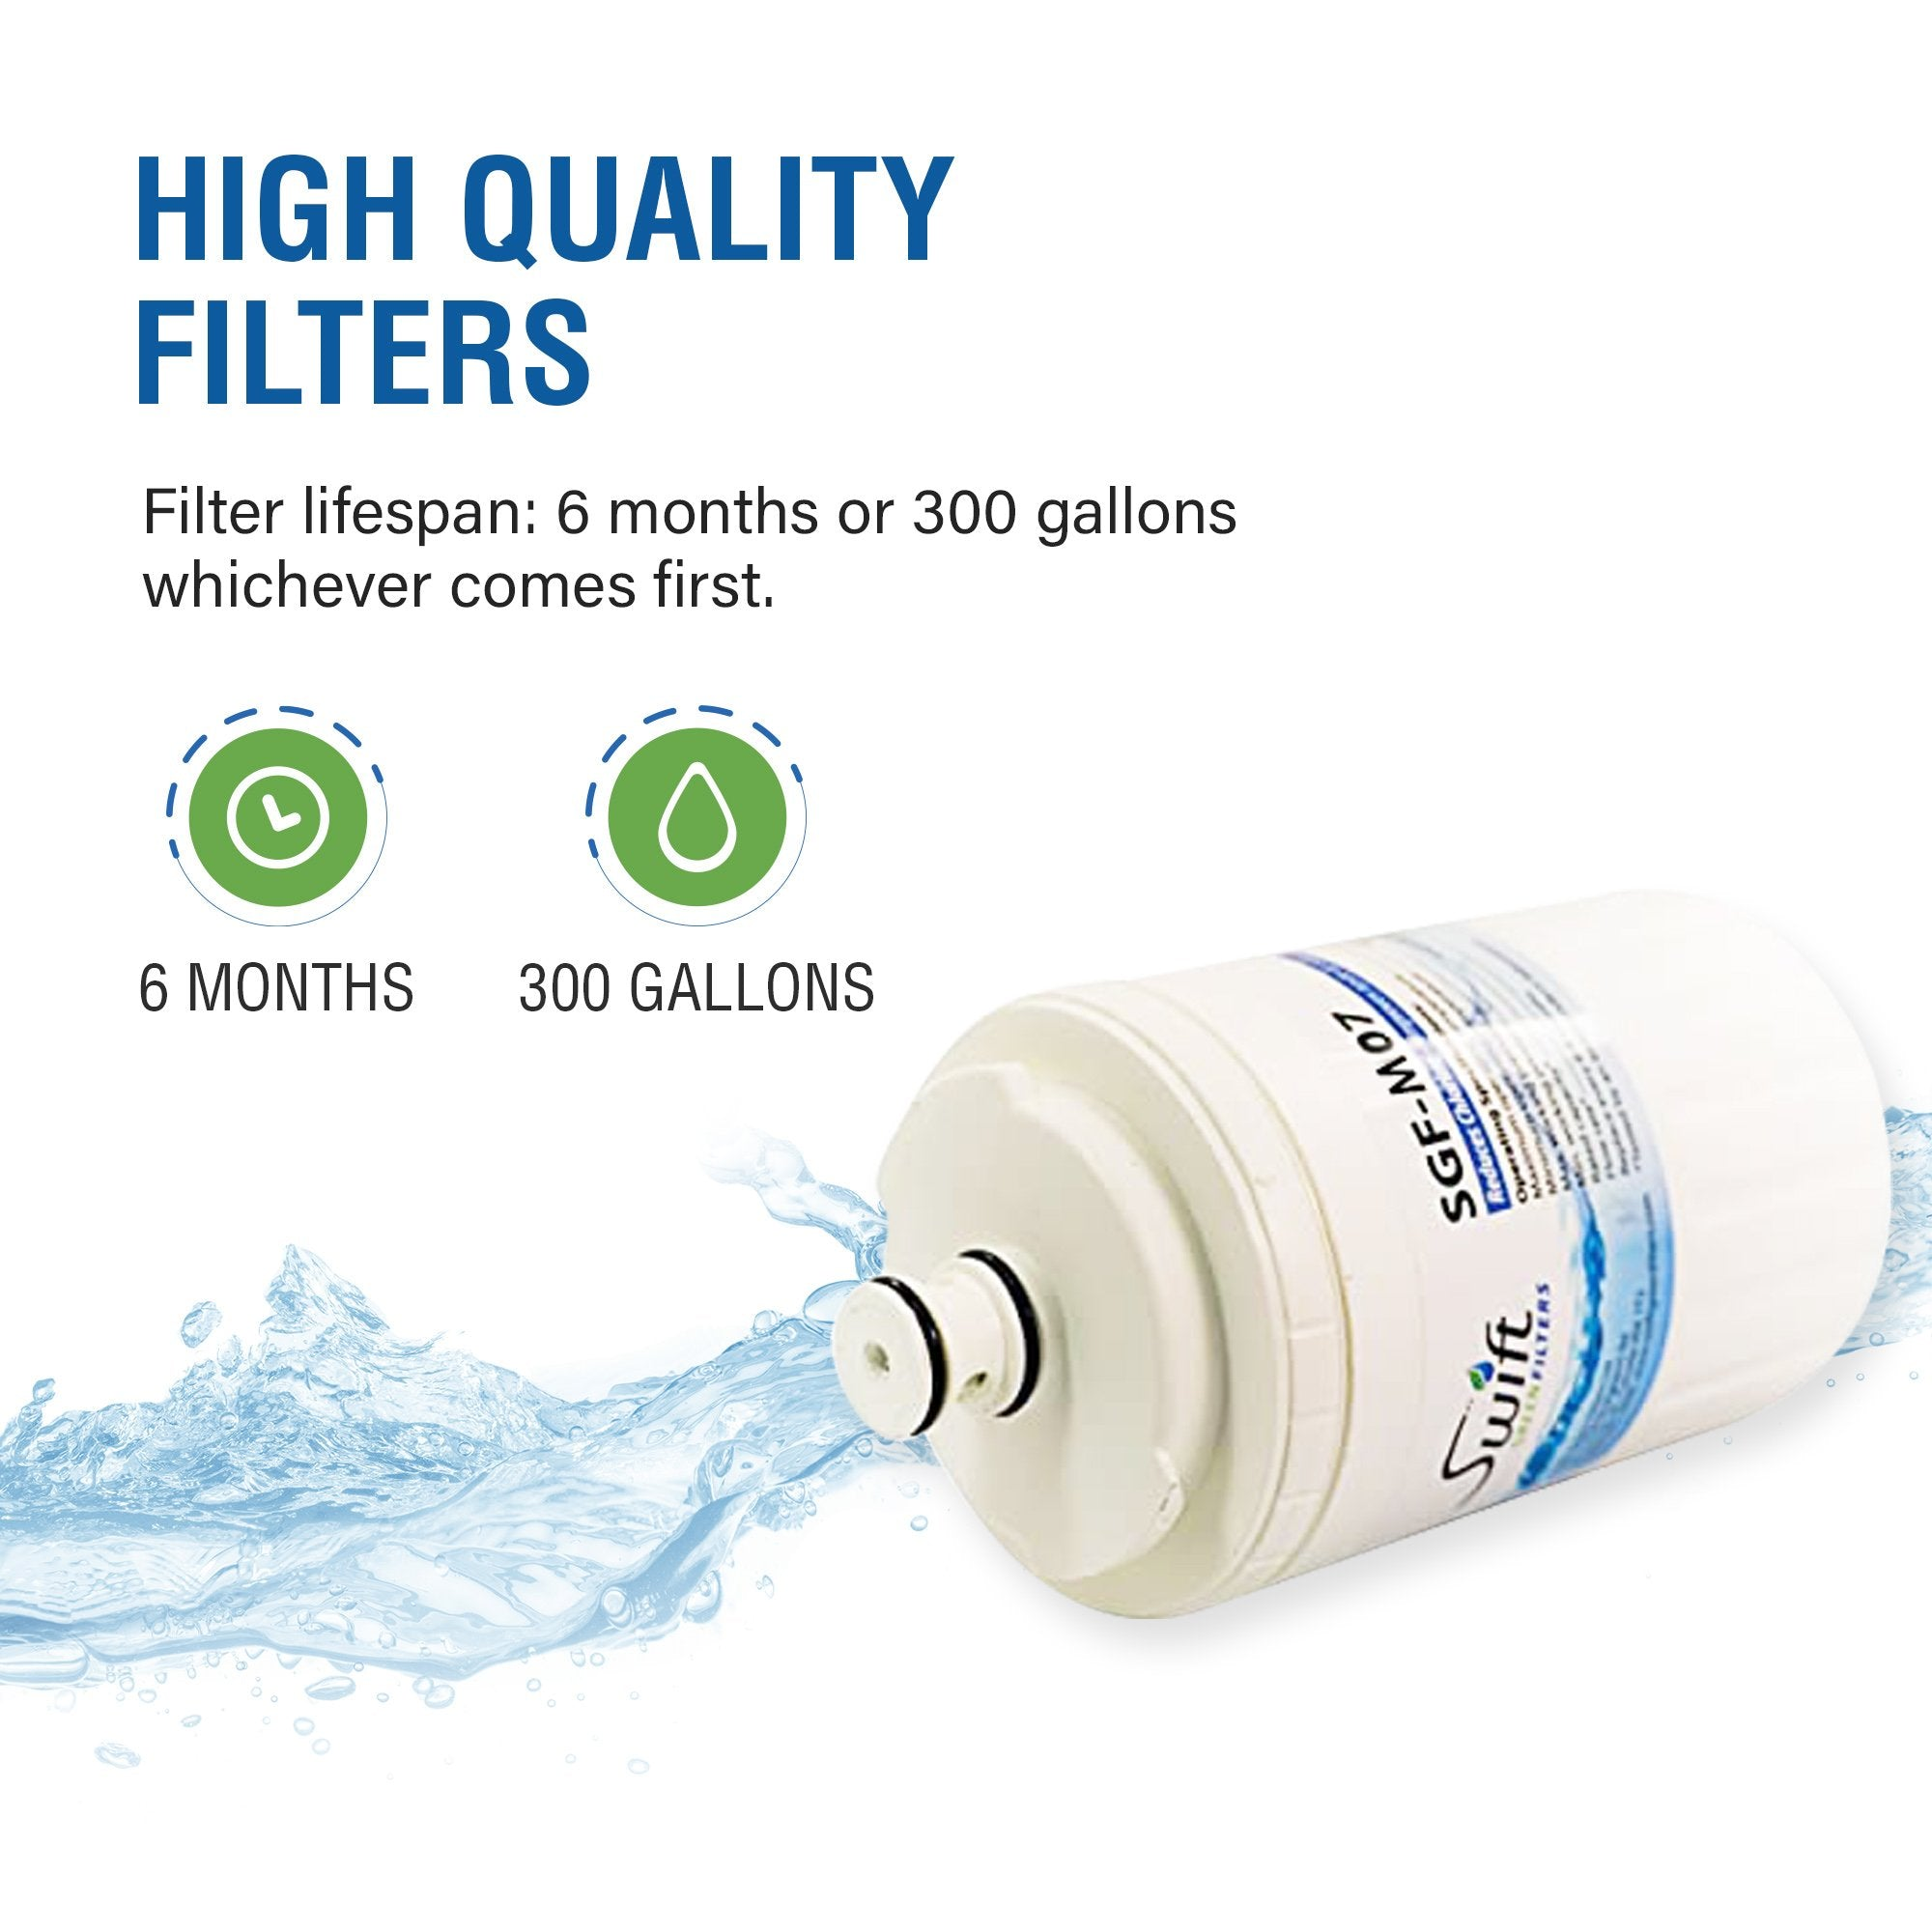 Everydrop EDR7D1 (Filter 7) & Maytag UKF7002/3 Compatible VOC Refrigerator Water Filter